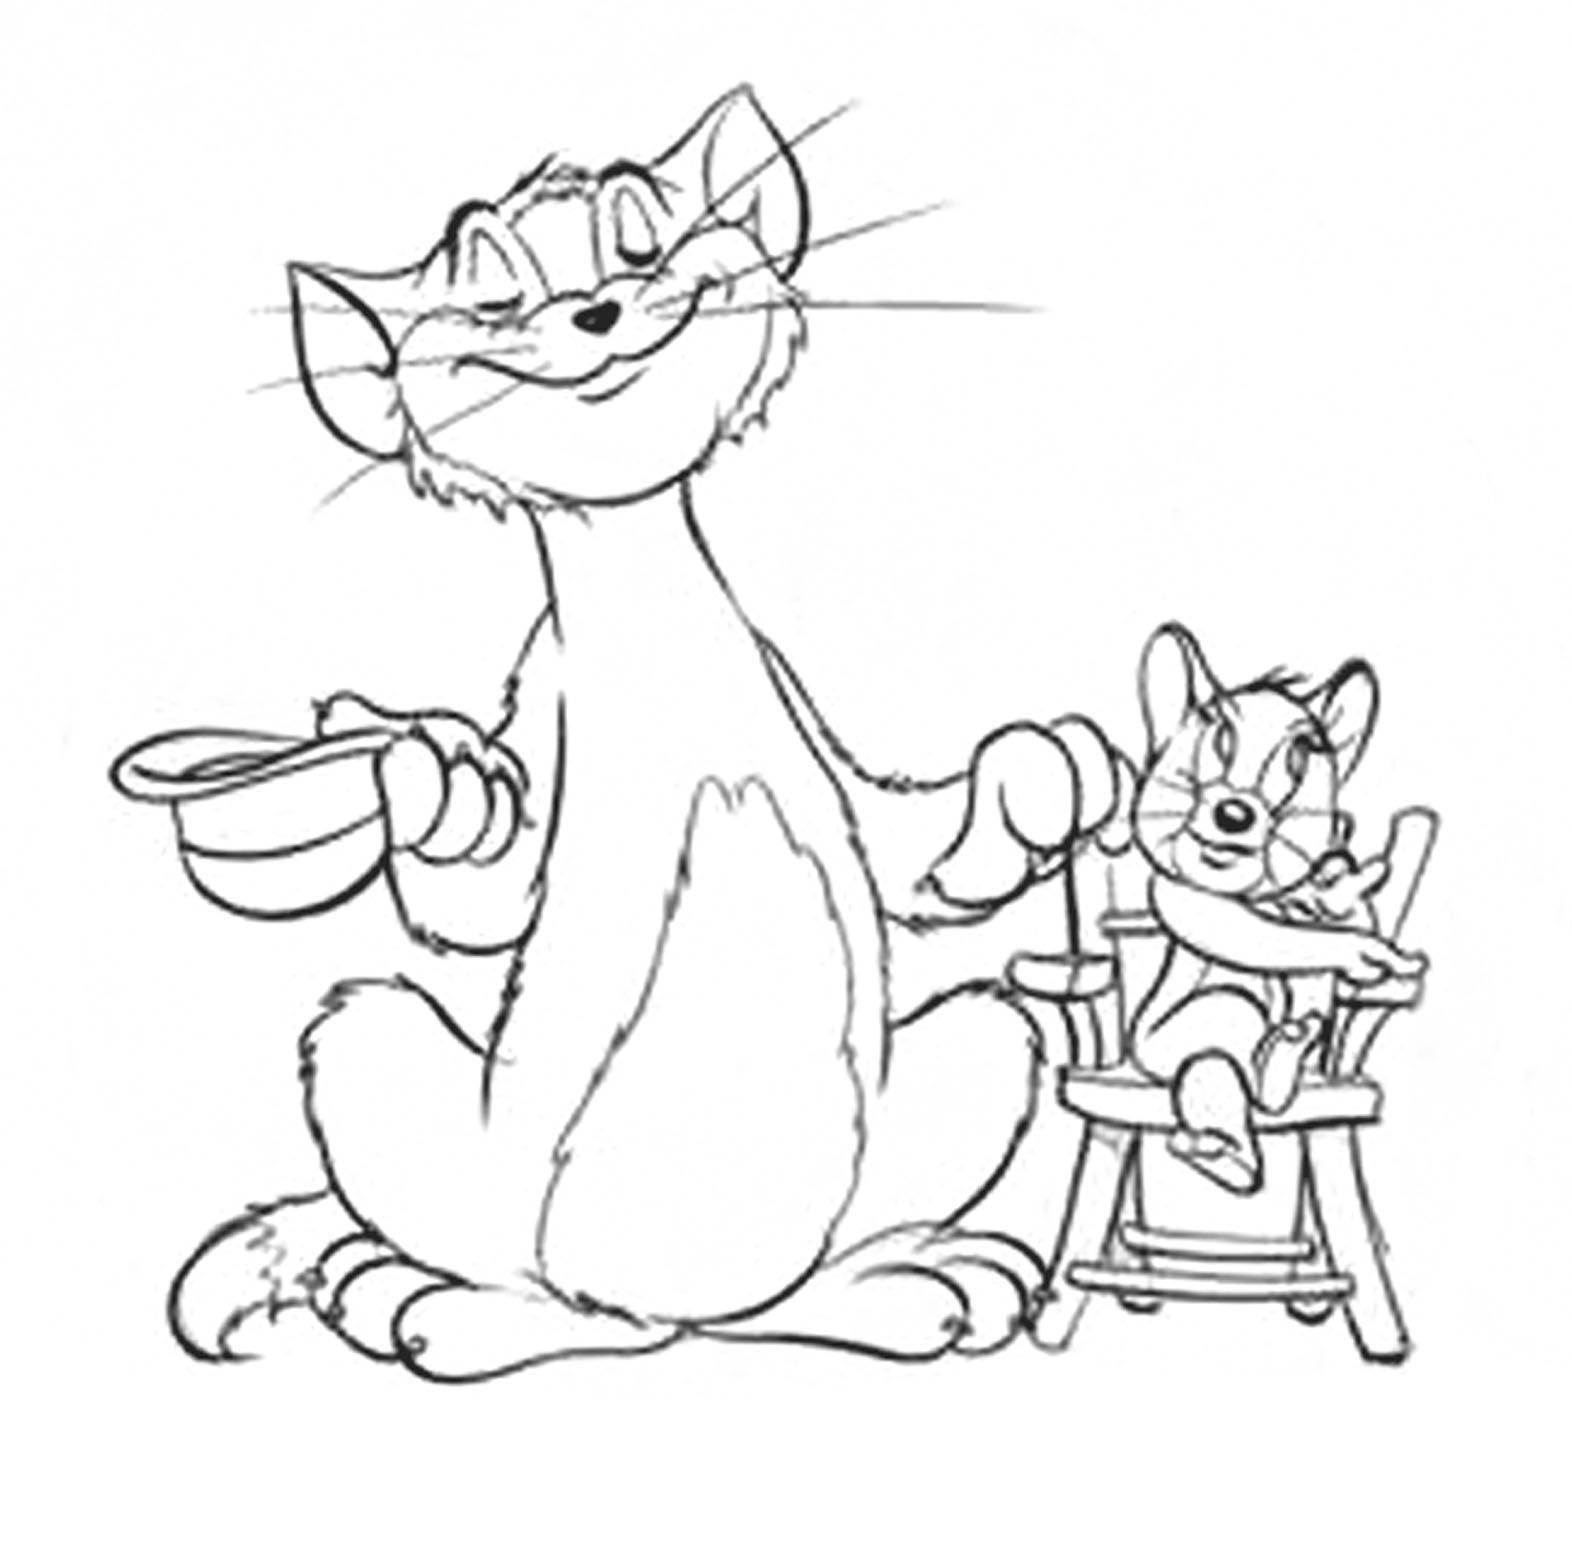 Tom and jerry online coloring games - Tom And Jerry Online Coloring Games 28